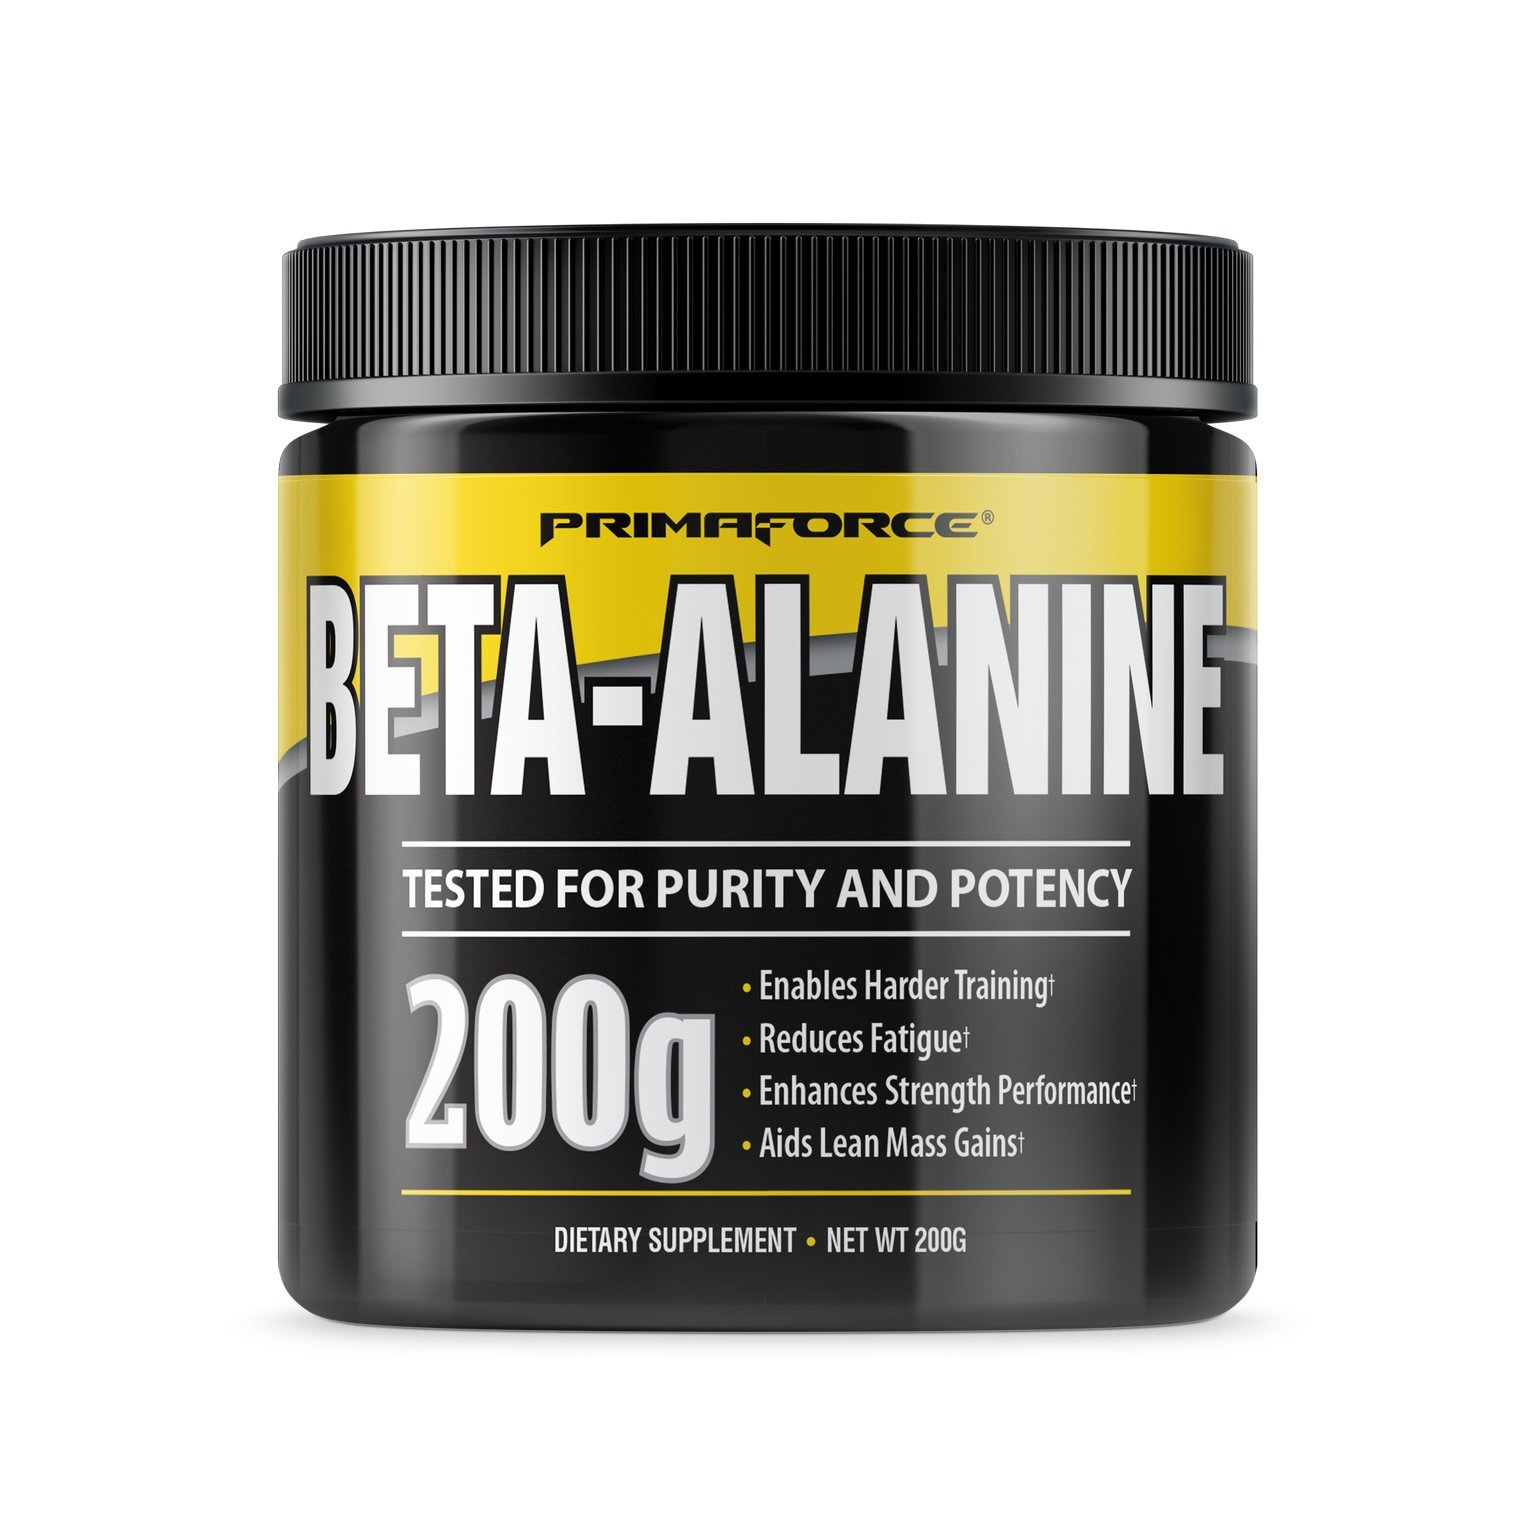 PrimaForce Beta-Alanine Powder Supplement, 200 Grams – Enables Harder Training / Improves Muscle Gains / Increases Workout Capacity / Reduces Muscle Fatigue